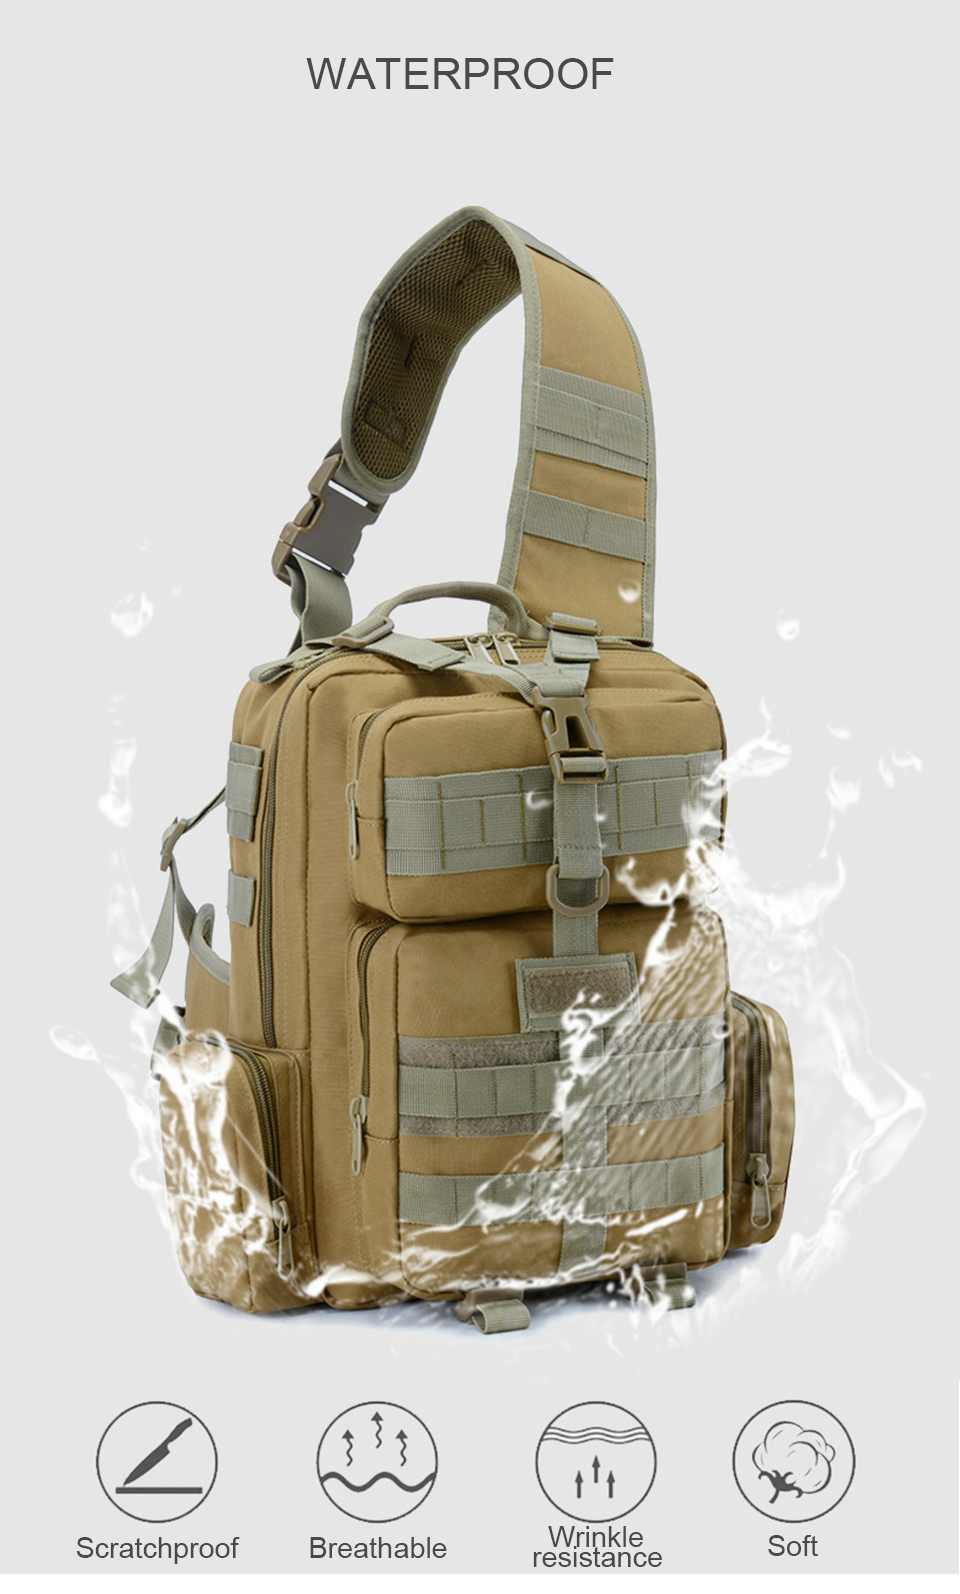 Outdoor-Sports-Military-Bag-Tactical-Bags-Climbing-Shoulder-Bag-Camping-Hiking-Hunting-Chest-Daypack-Molle-Camouflage-Backpack_06